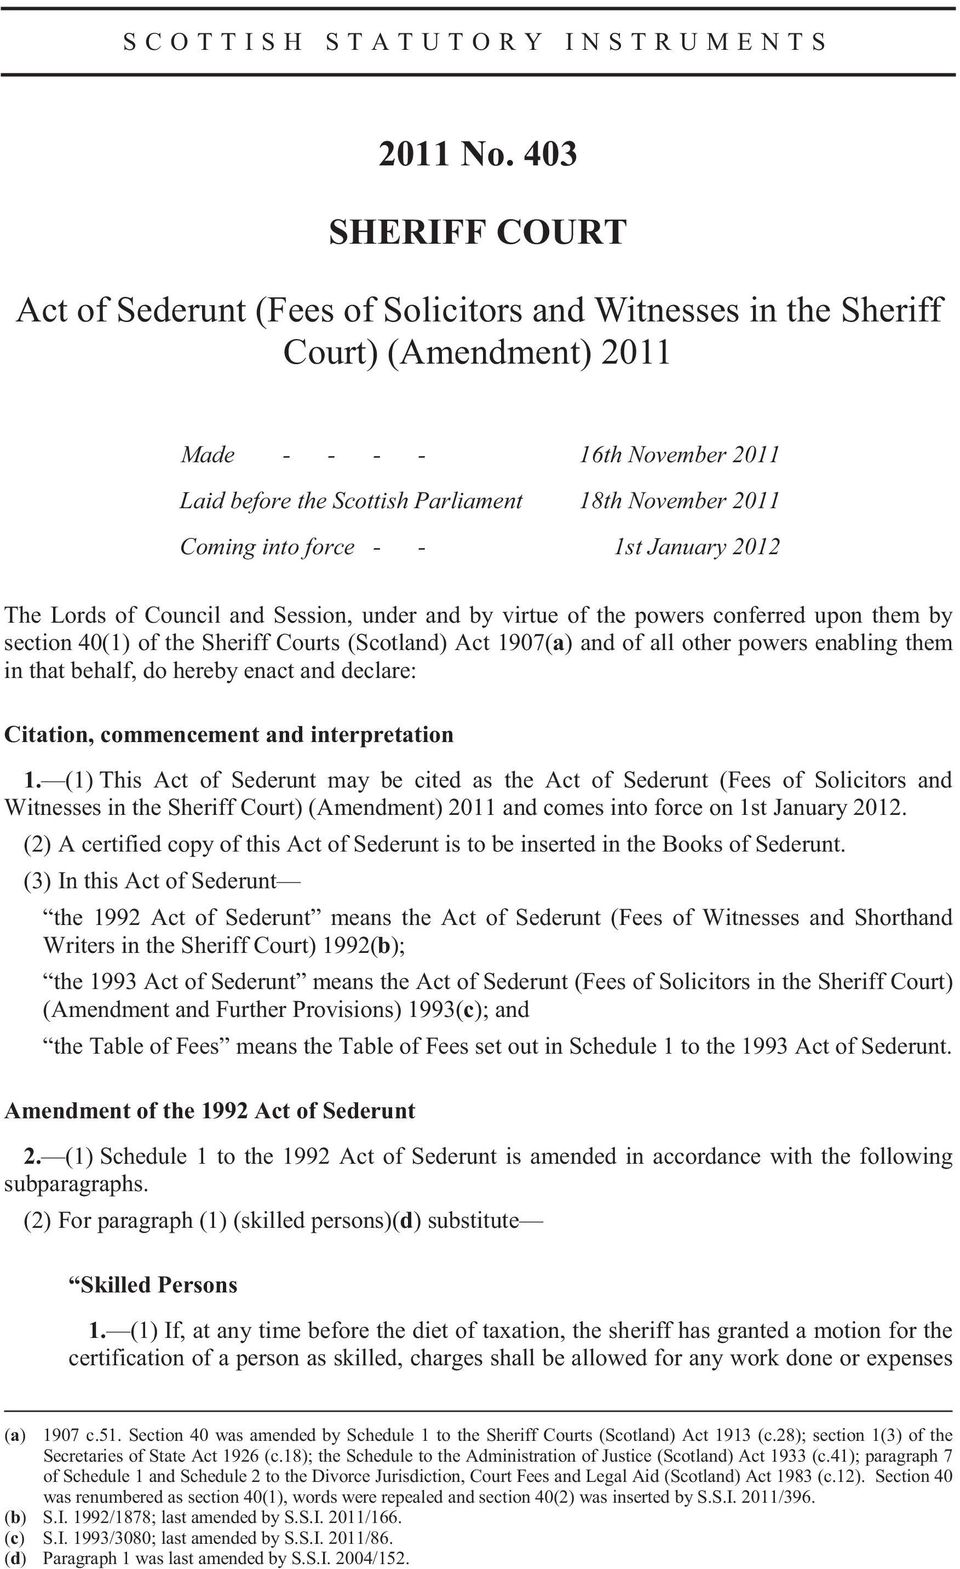 Coming into force - - 1st January 2012 The Lords of Council and Session, under and by virtue of the powers conferred upon them by section 40(1) of the Sheriff Courts (Scotland) Act 1907(a) and of all